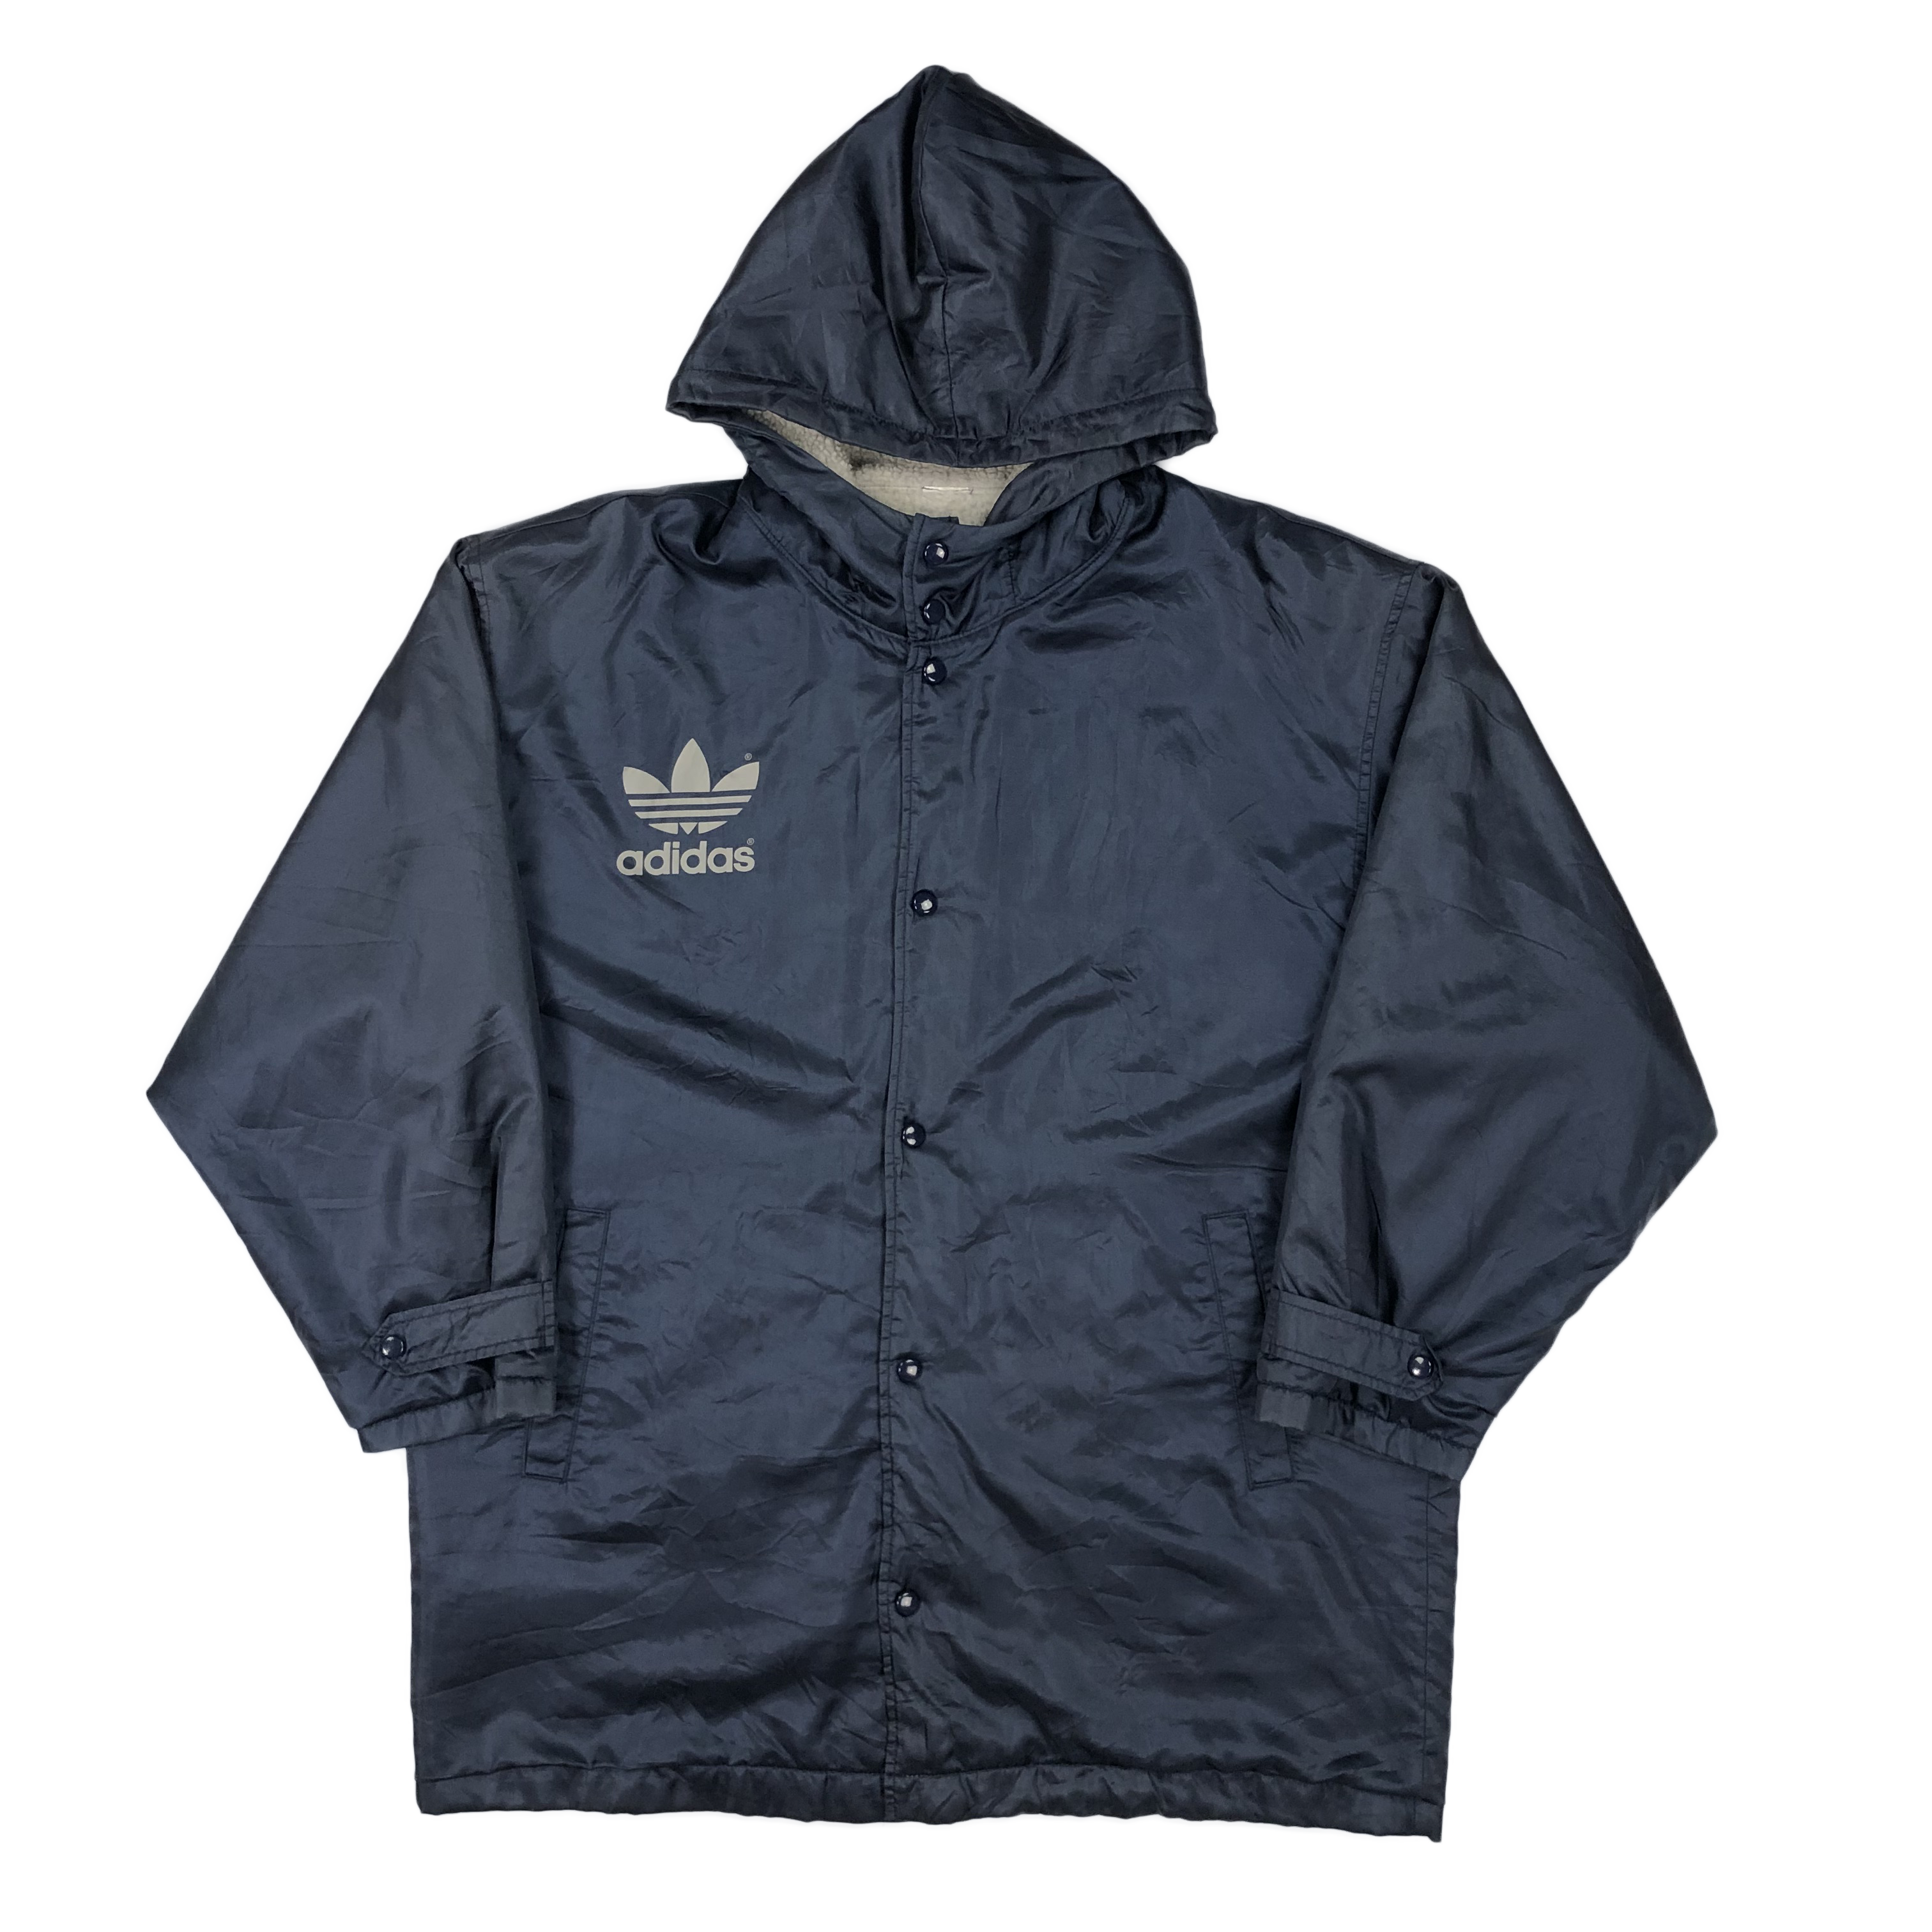 Adidas parka fleece lined jacket